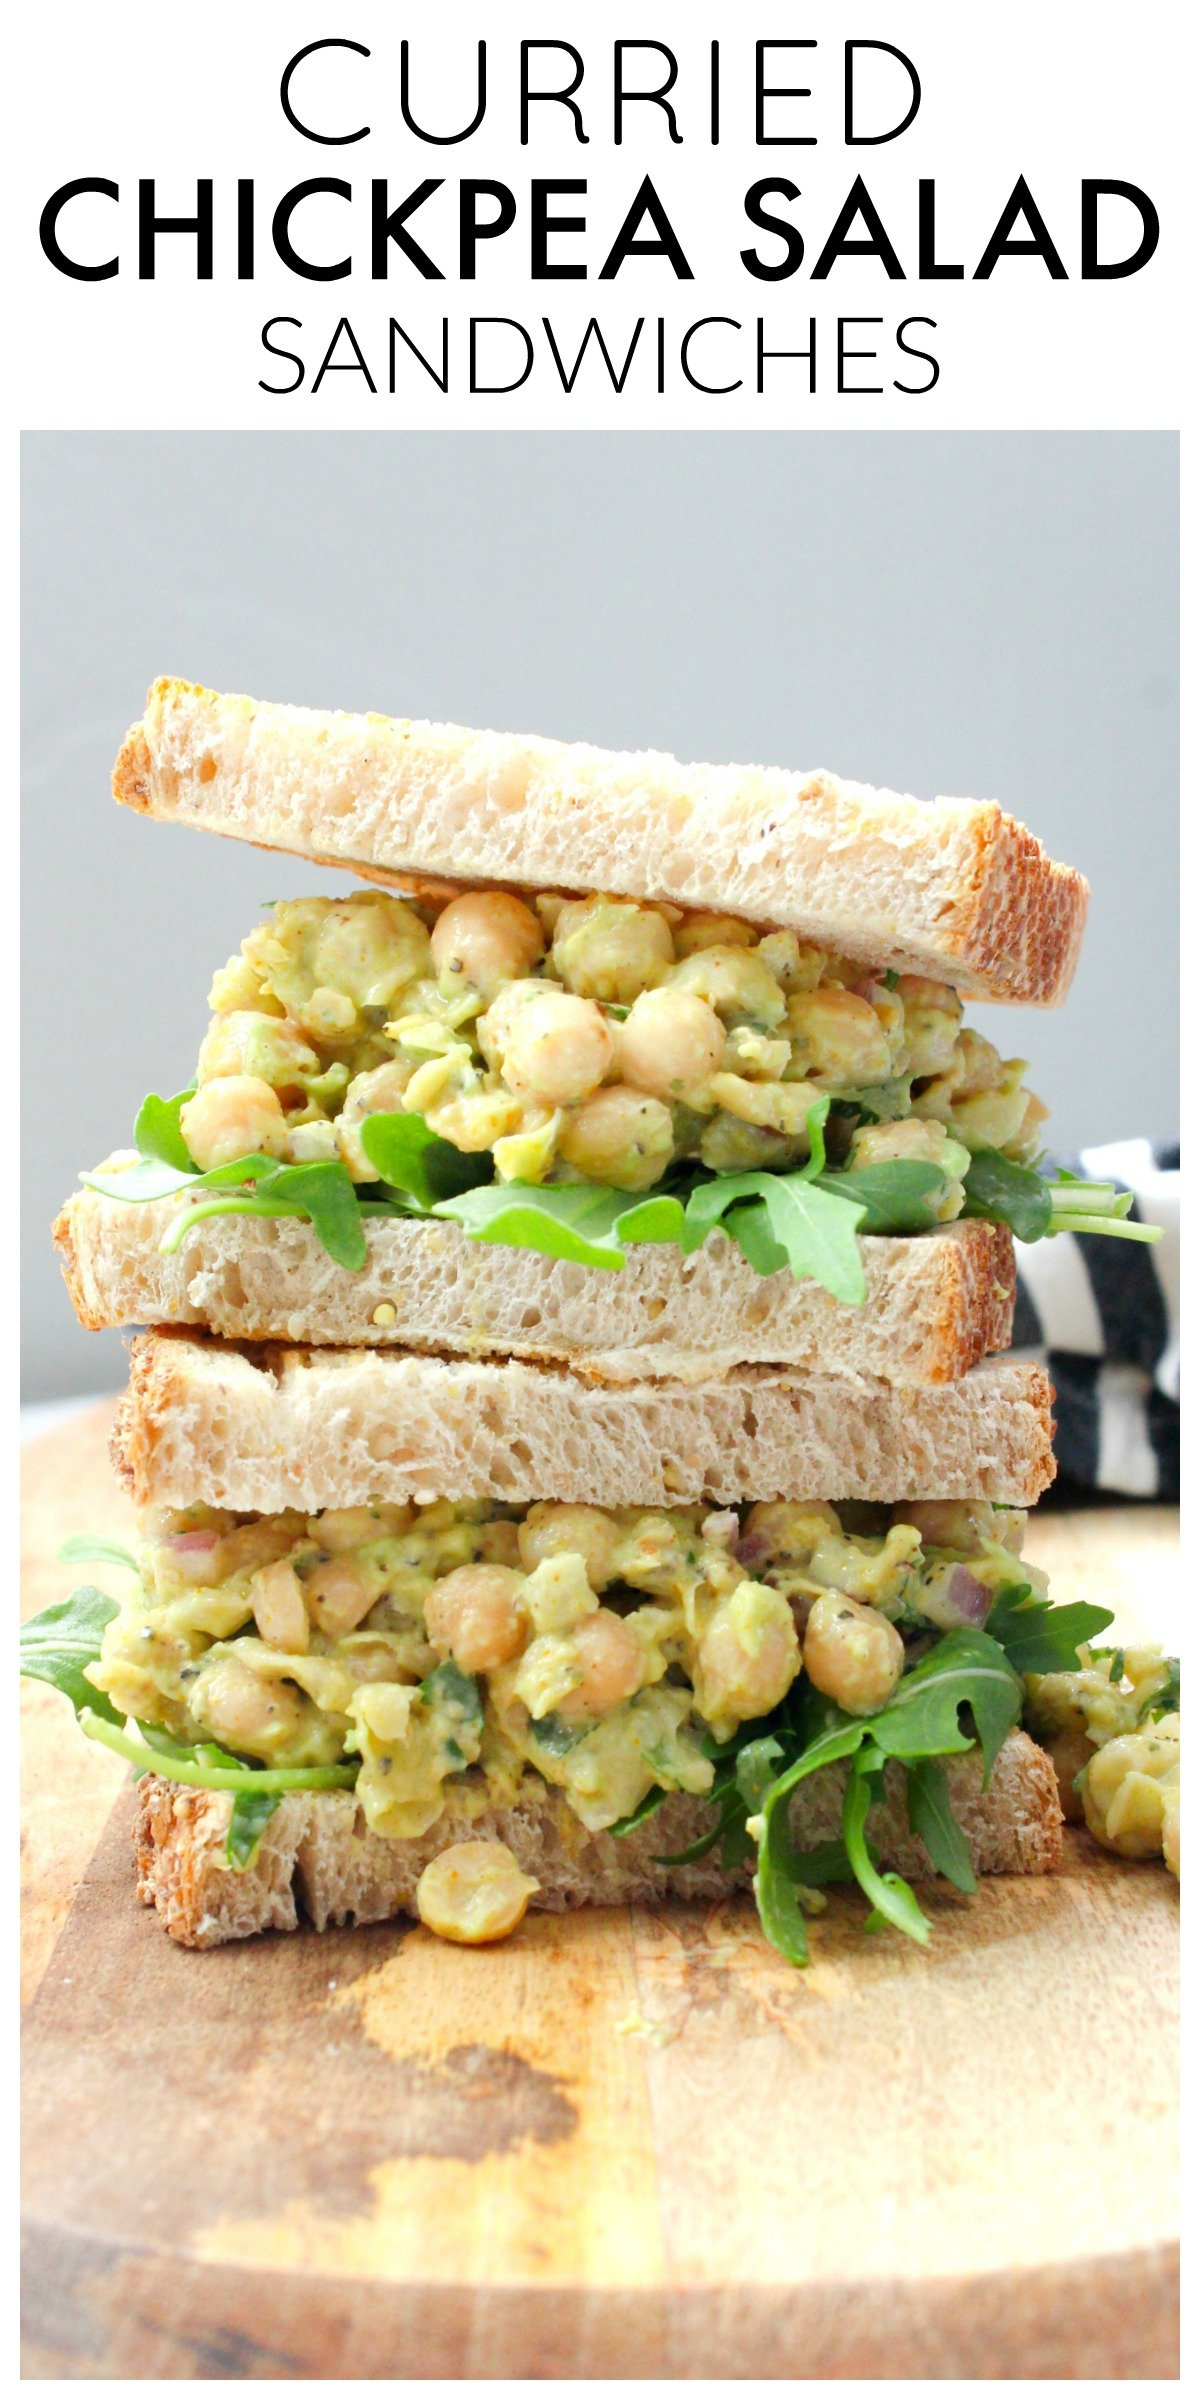 Spice up your next lunch with these Curried Chickpea Salad Sandwiches. The perfect amount of creaminess and spice on toasted sourdough   ThisSavoryVegan.com #thissavoryvegan #veganlunch